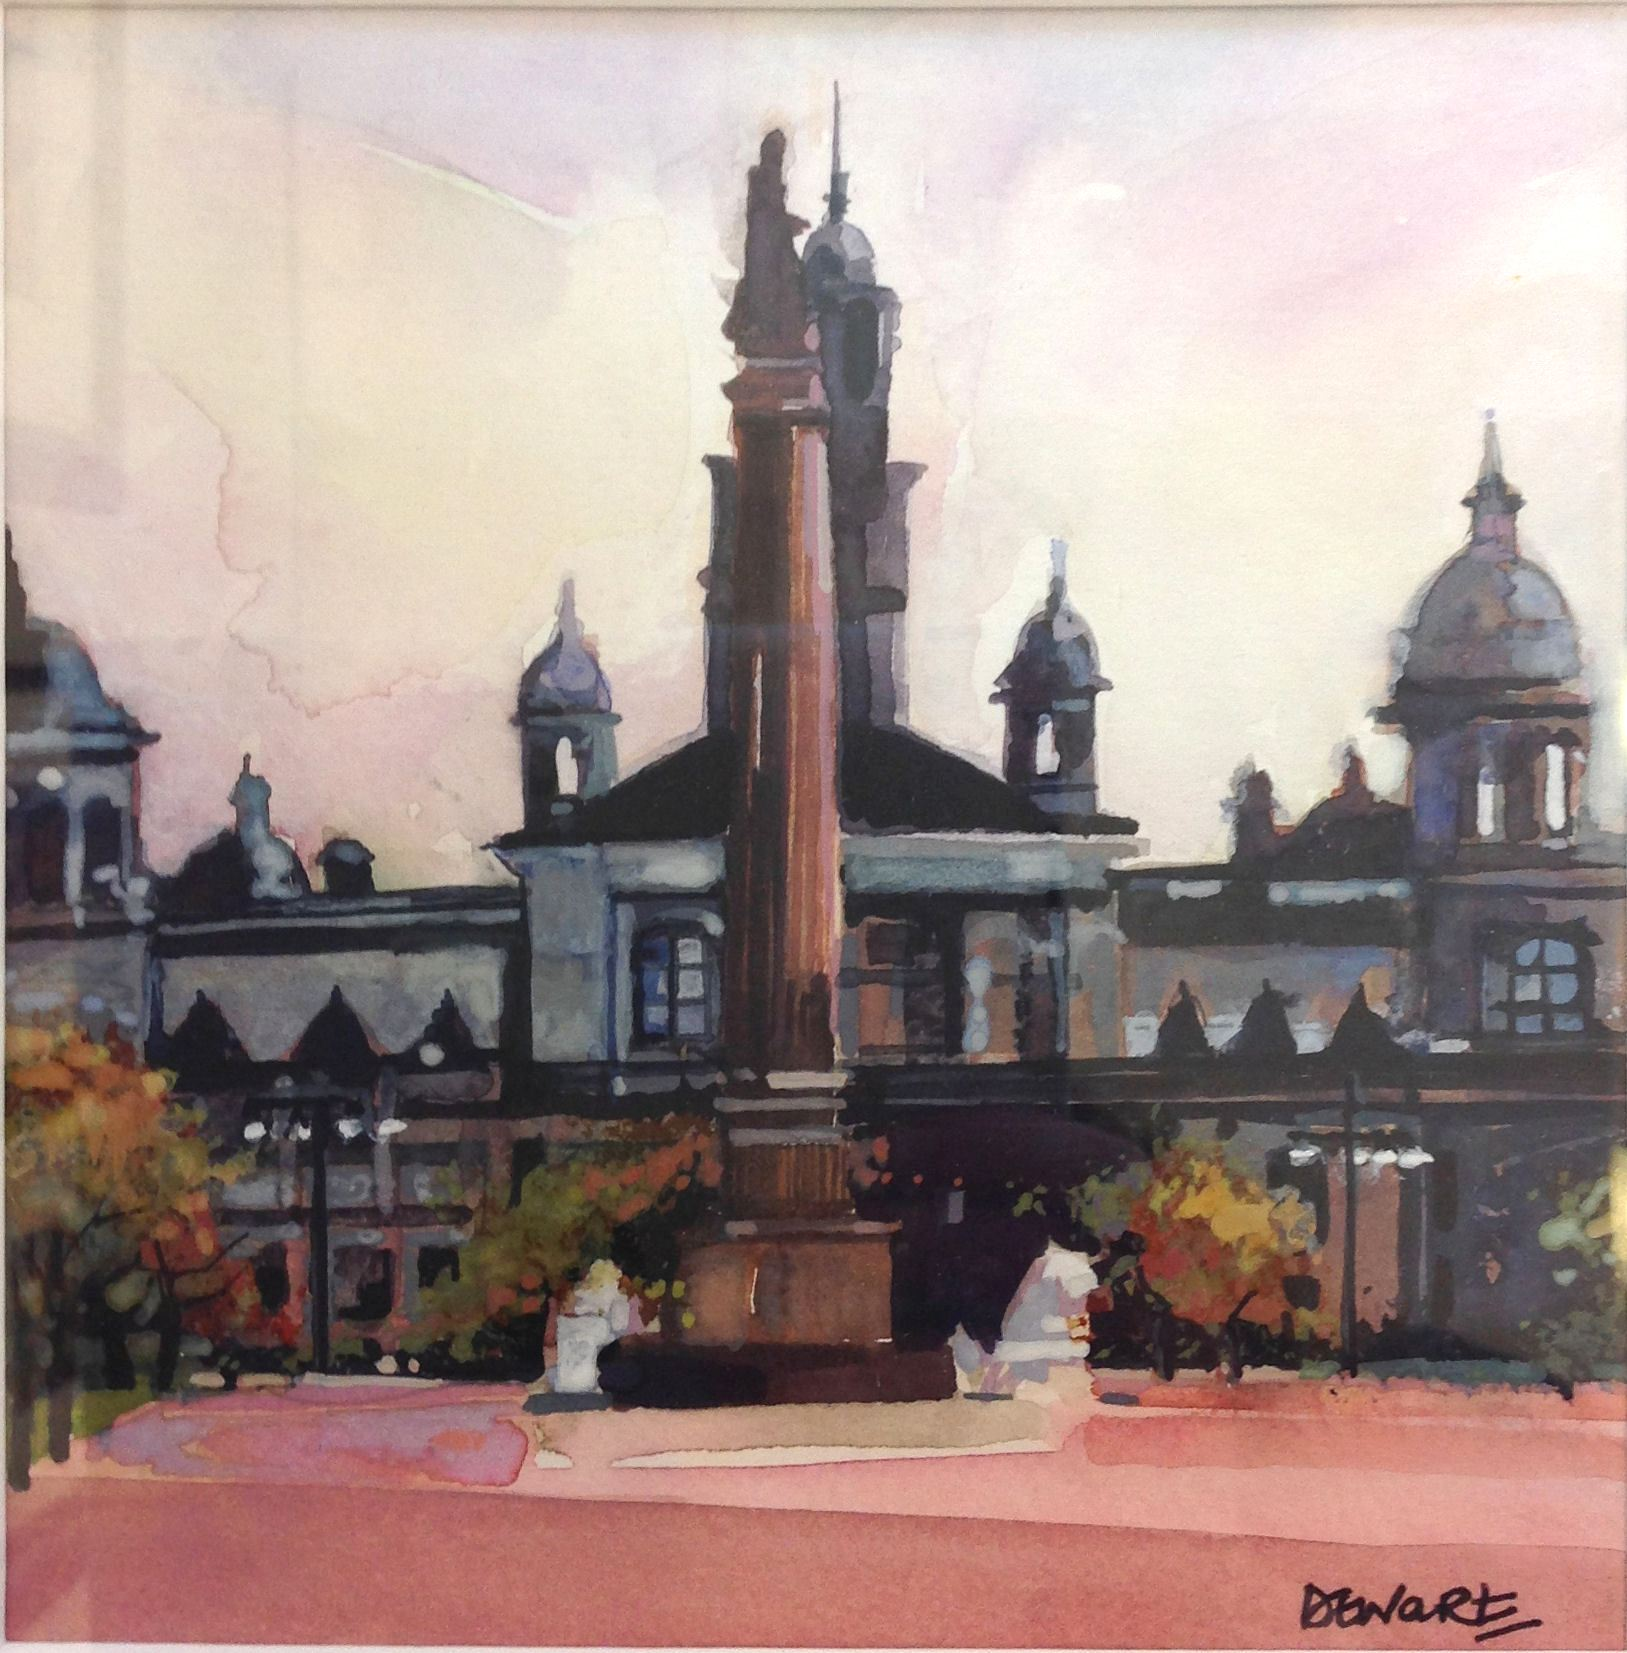 'George Square' by artist Carol Dewart